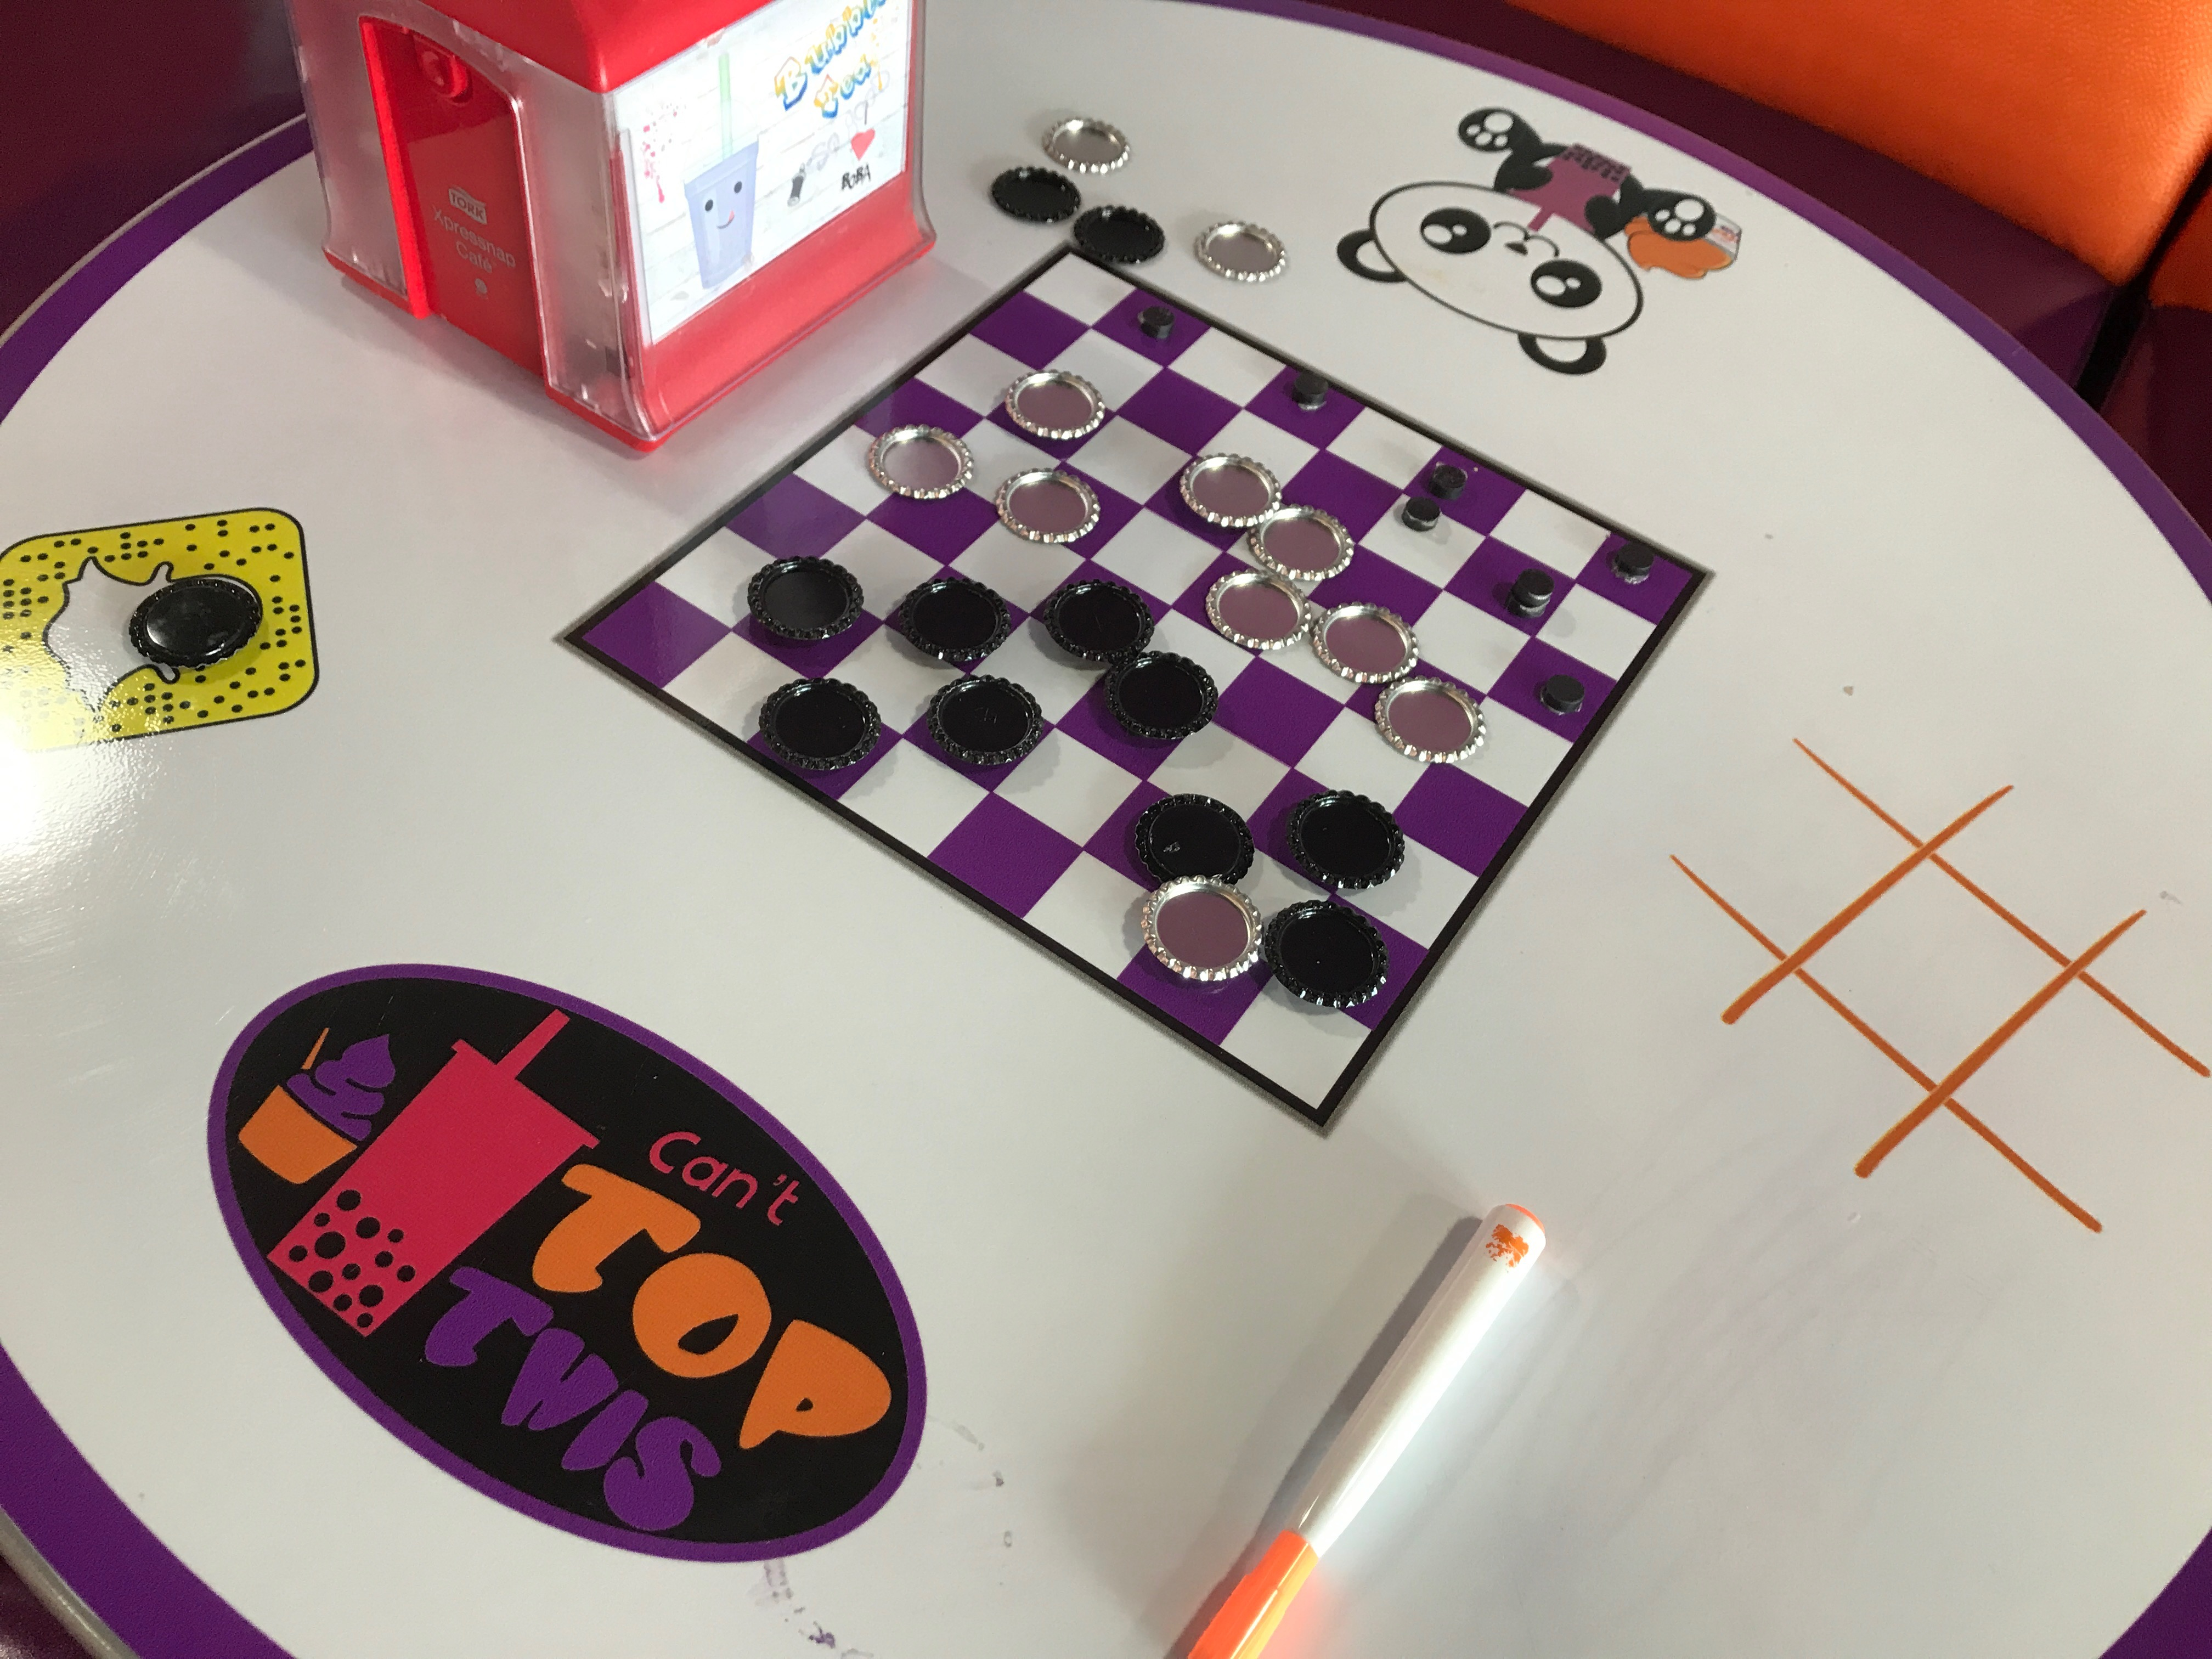 Table top with checkers and tic-tac-toe